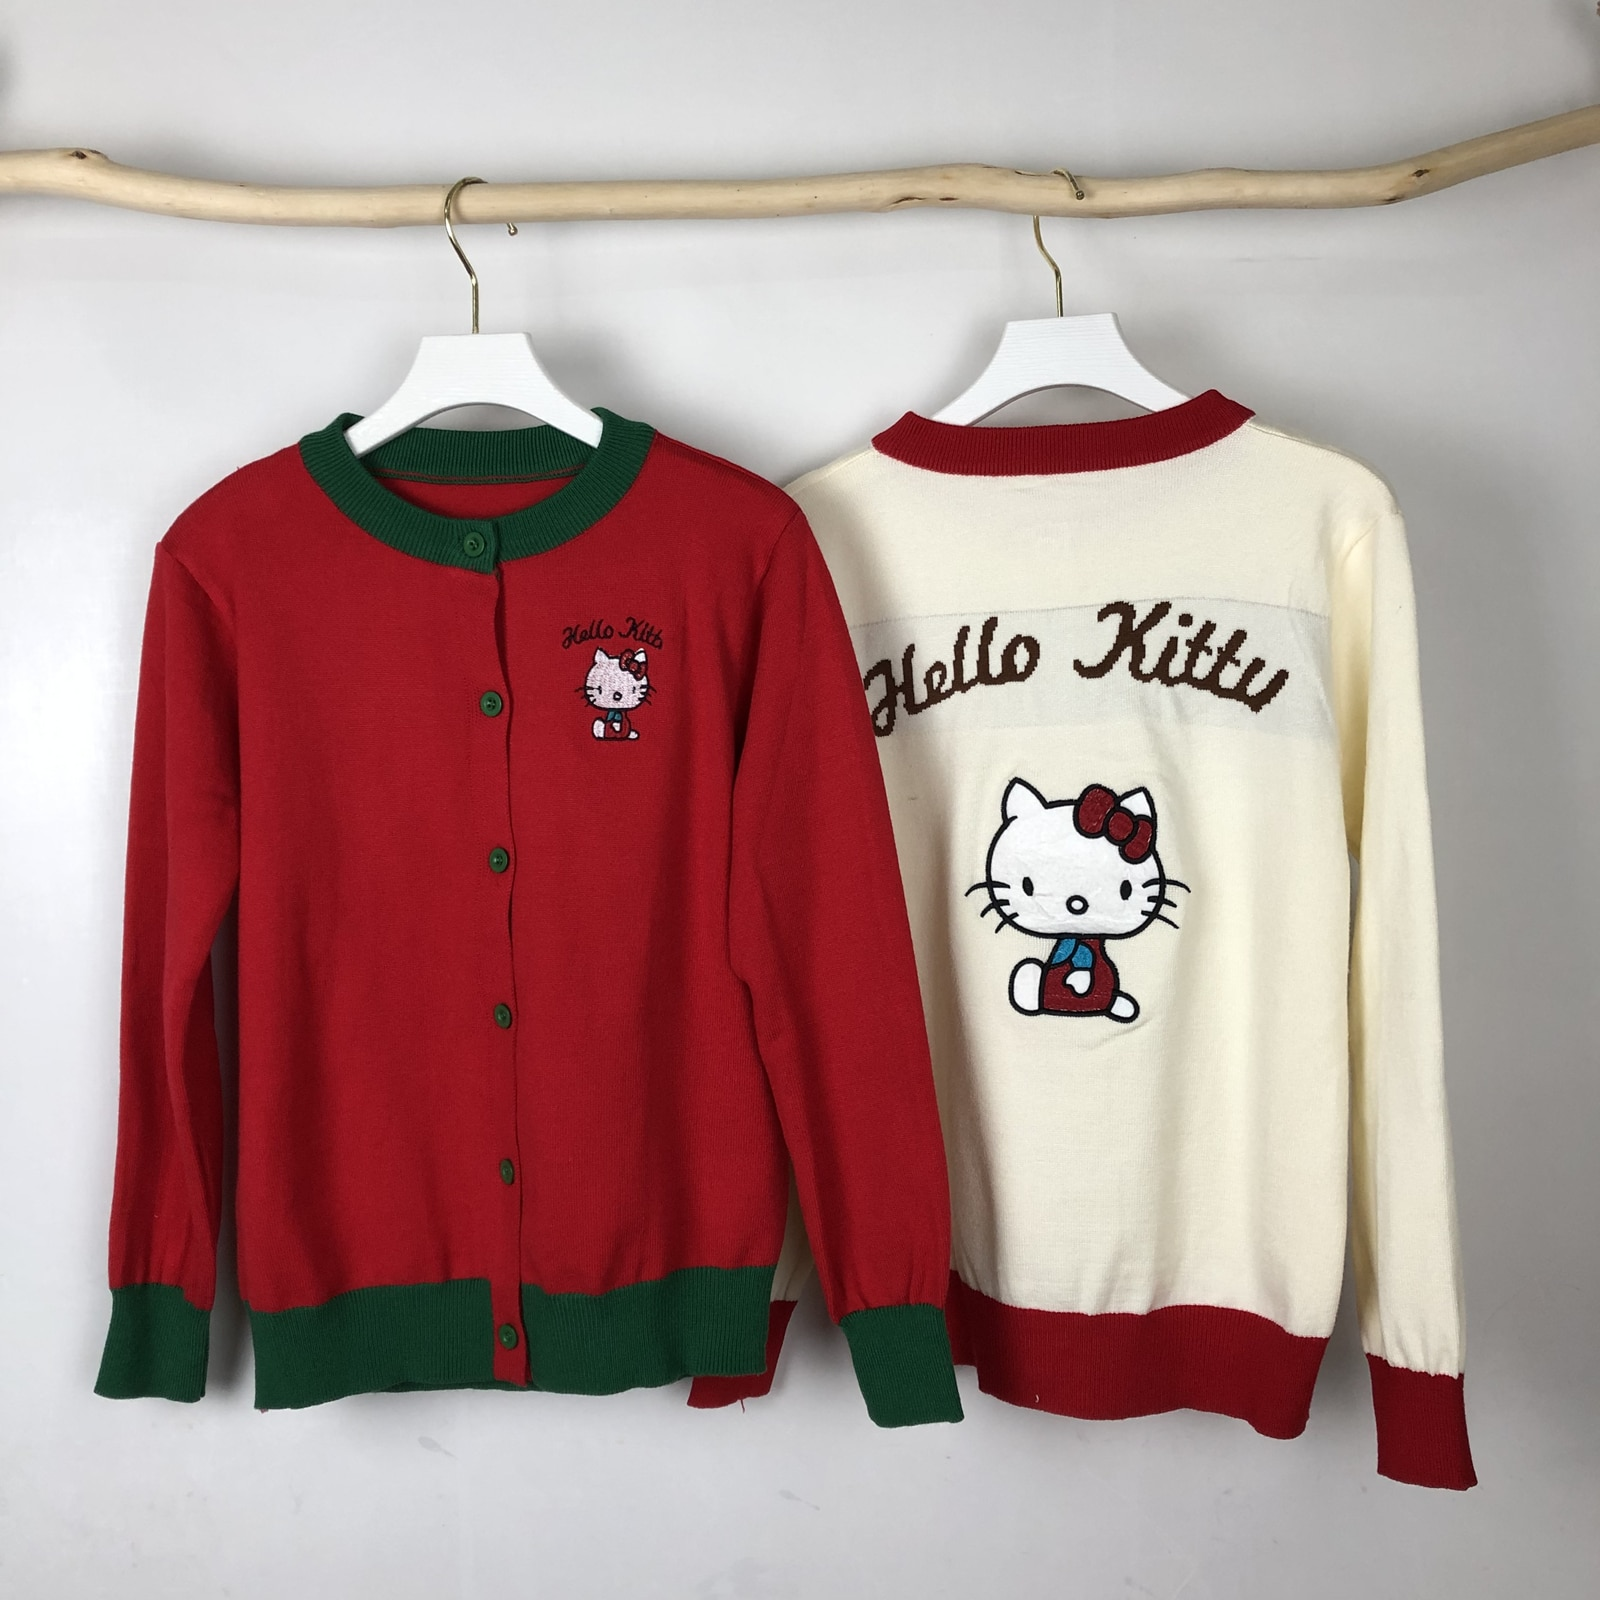 Kitty Cat Sweater Women Cardigan Cartoon Cute Tops Autumn Winter Embroidery Knit Long Sleeve Contrast Retro Vintage Clothes